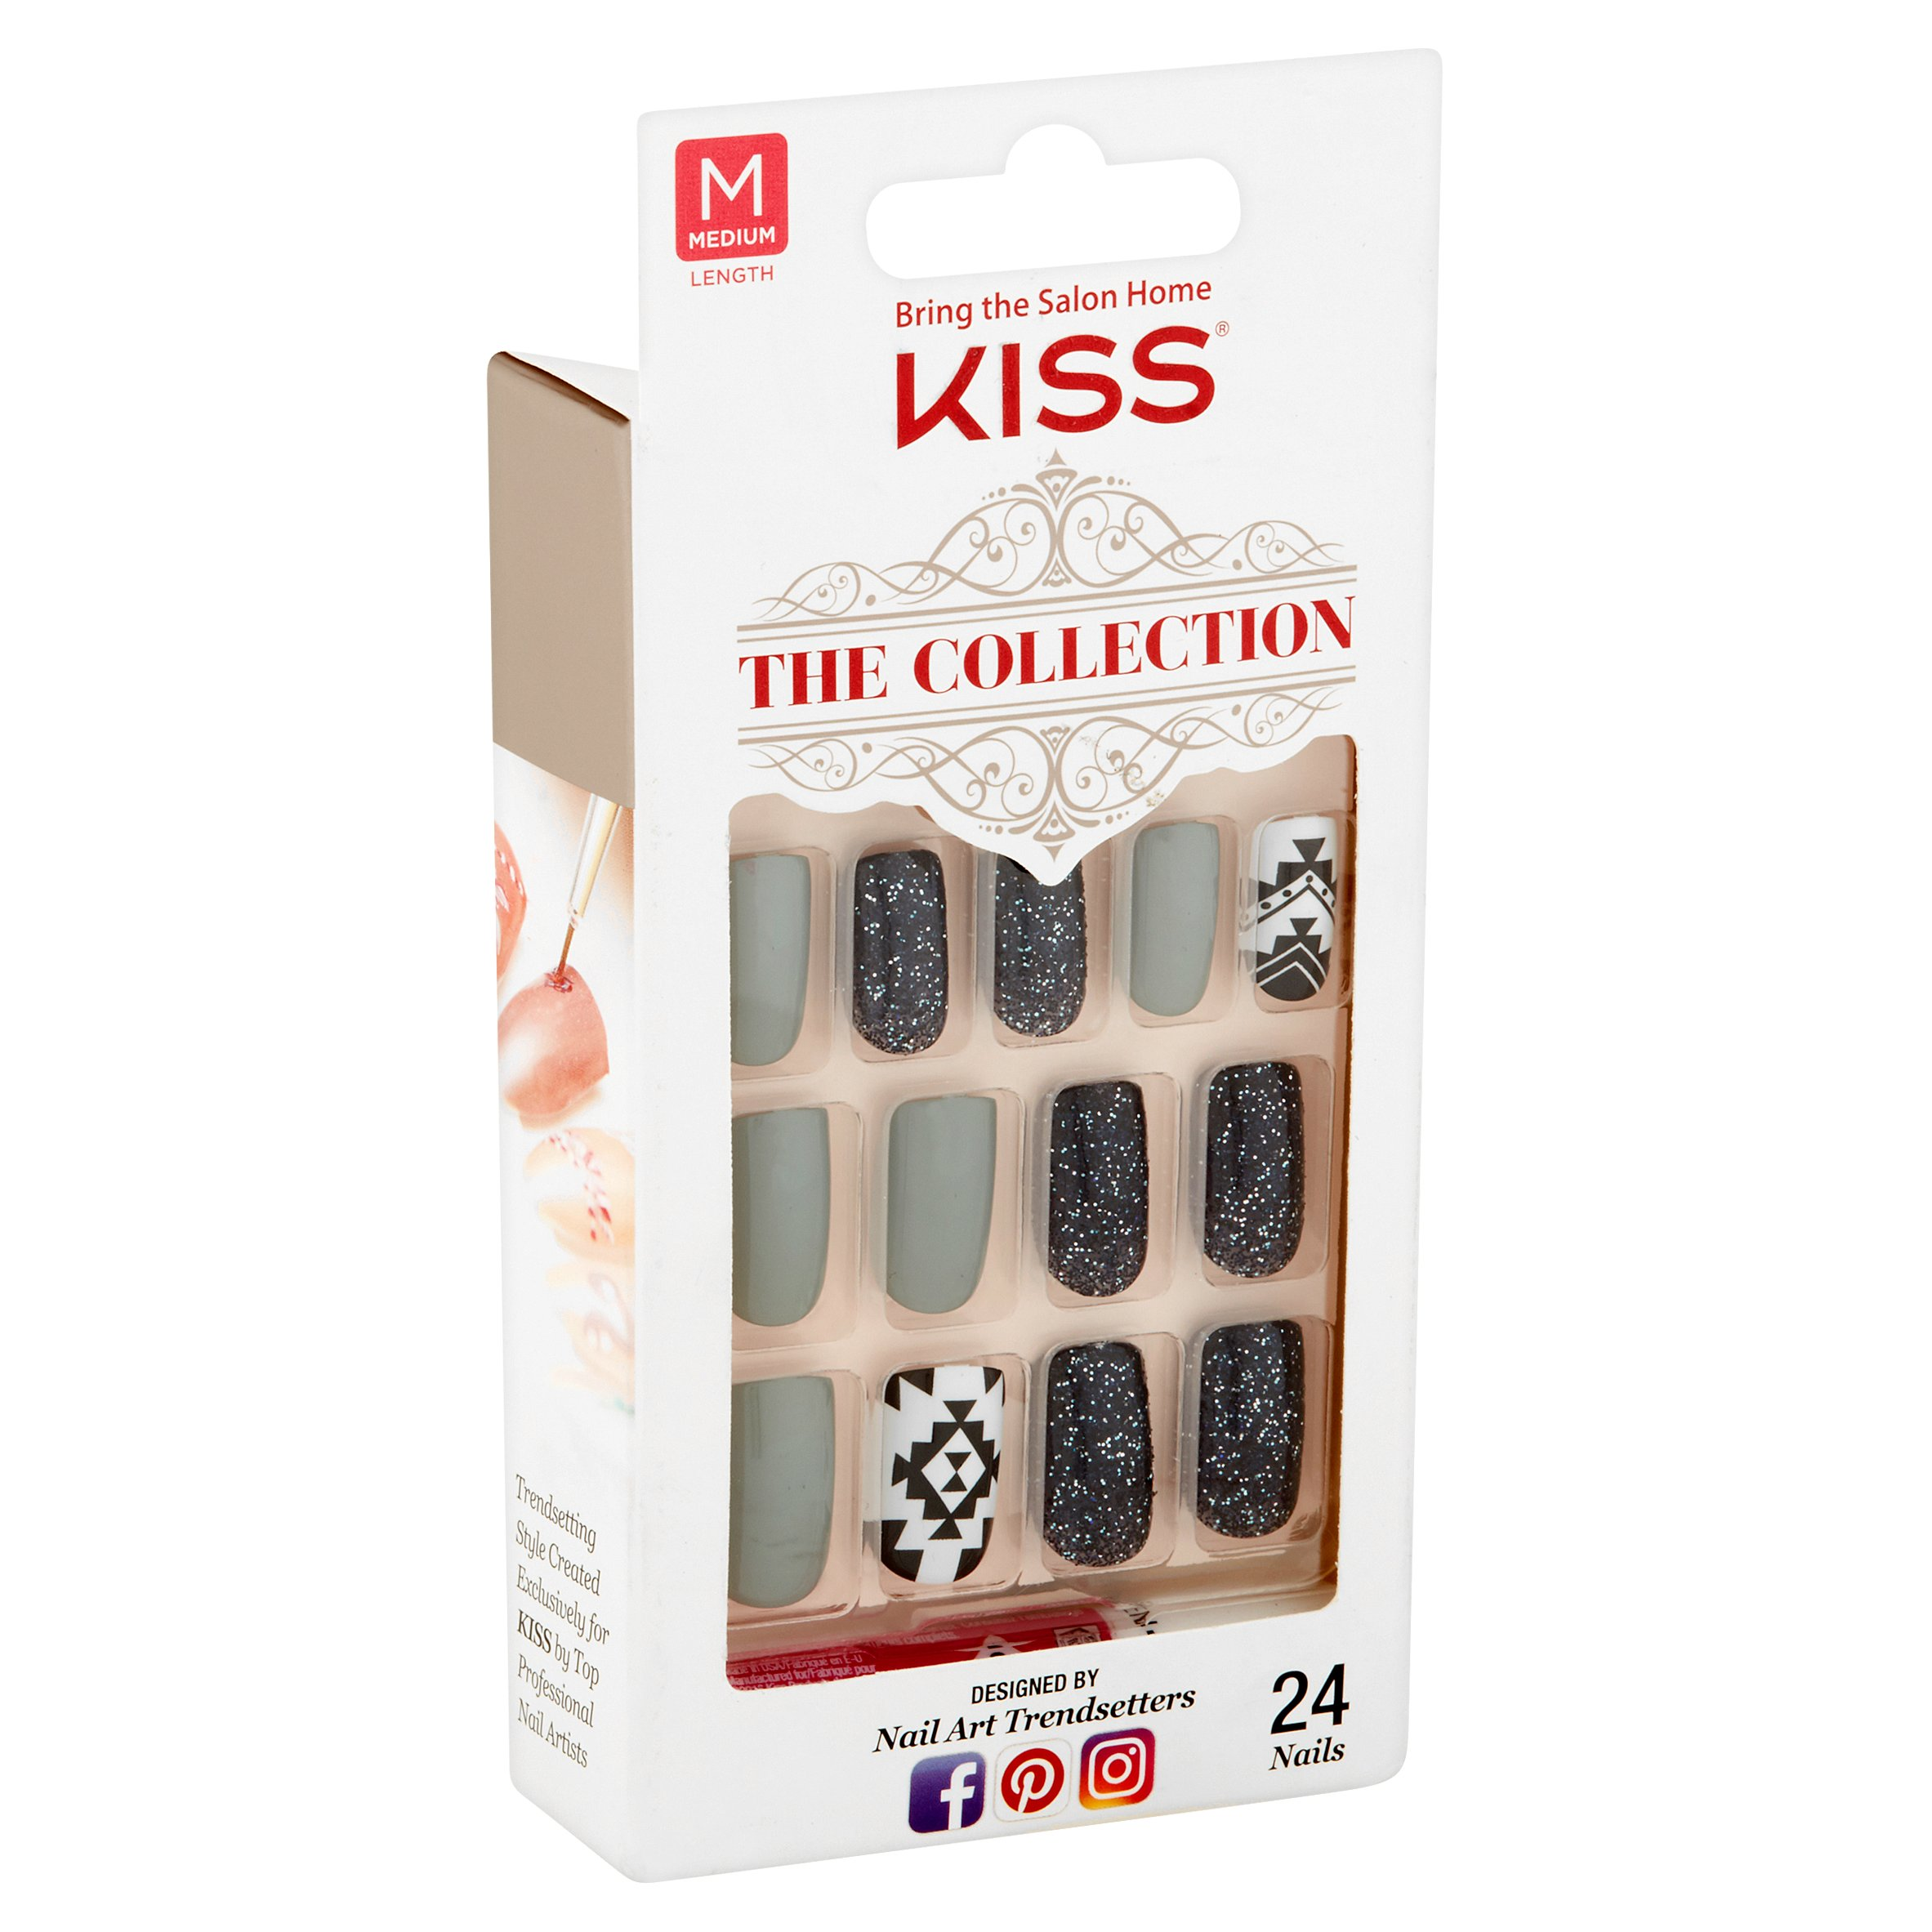 The Collection Nails - Temptation - Walmart.com